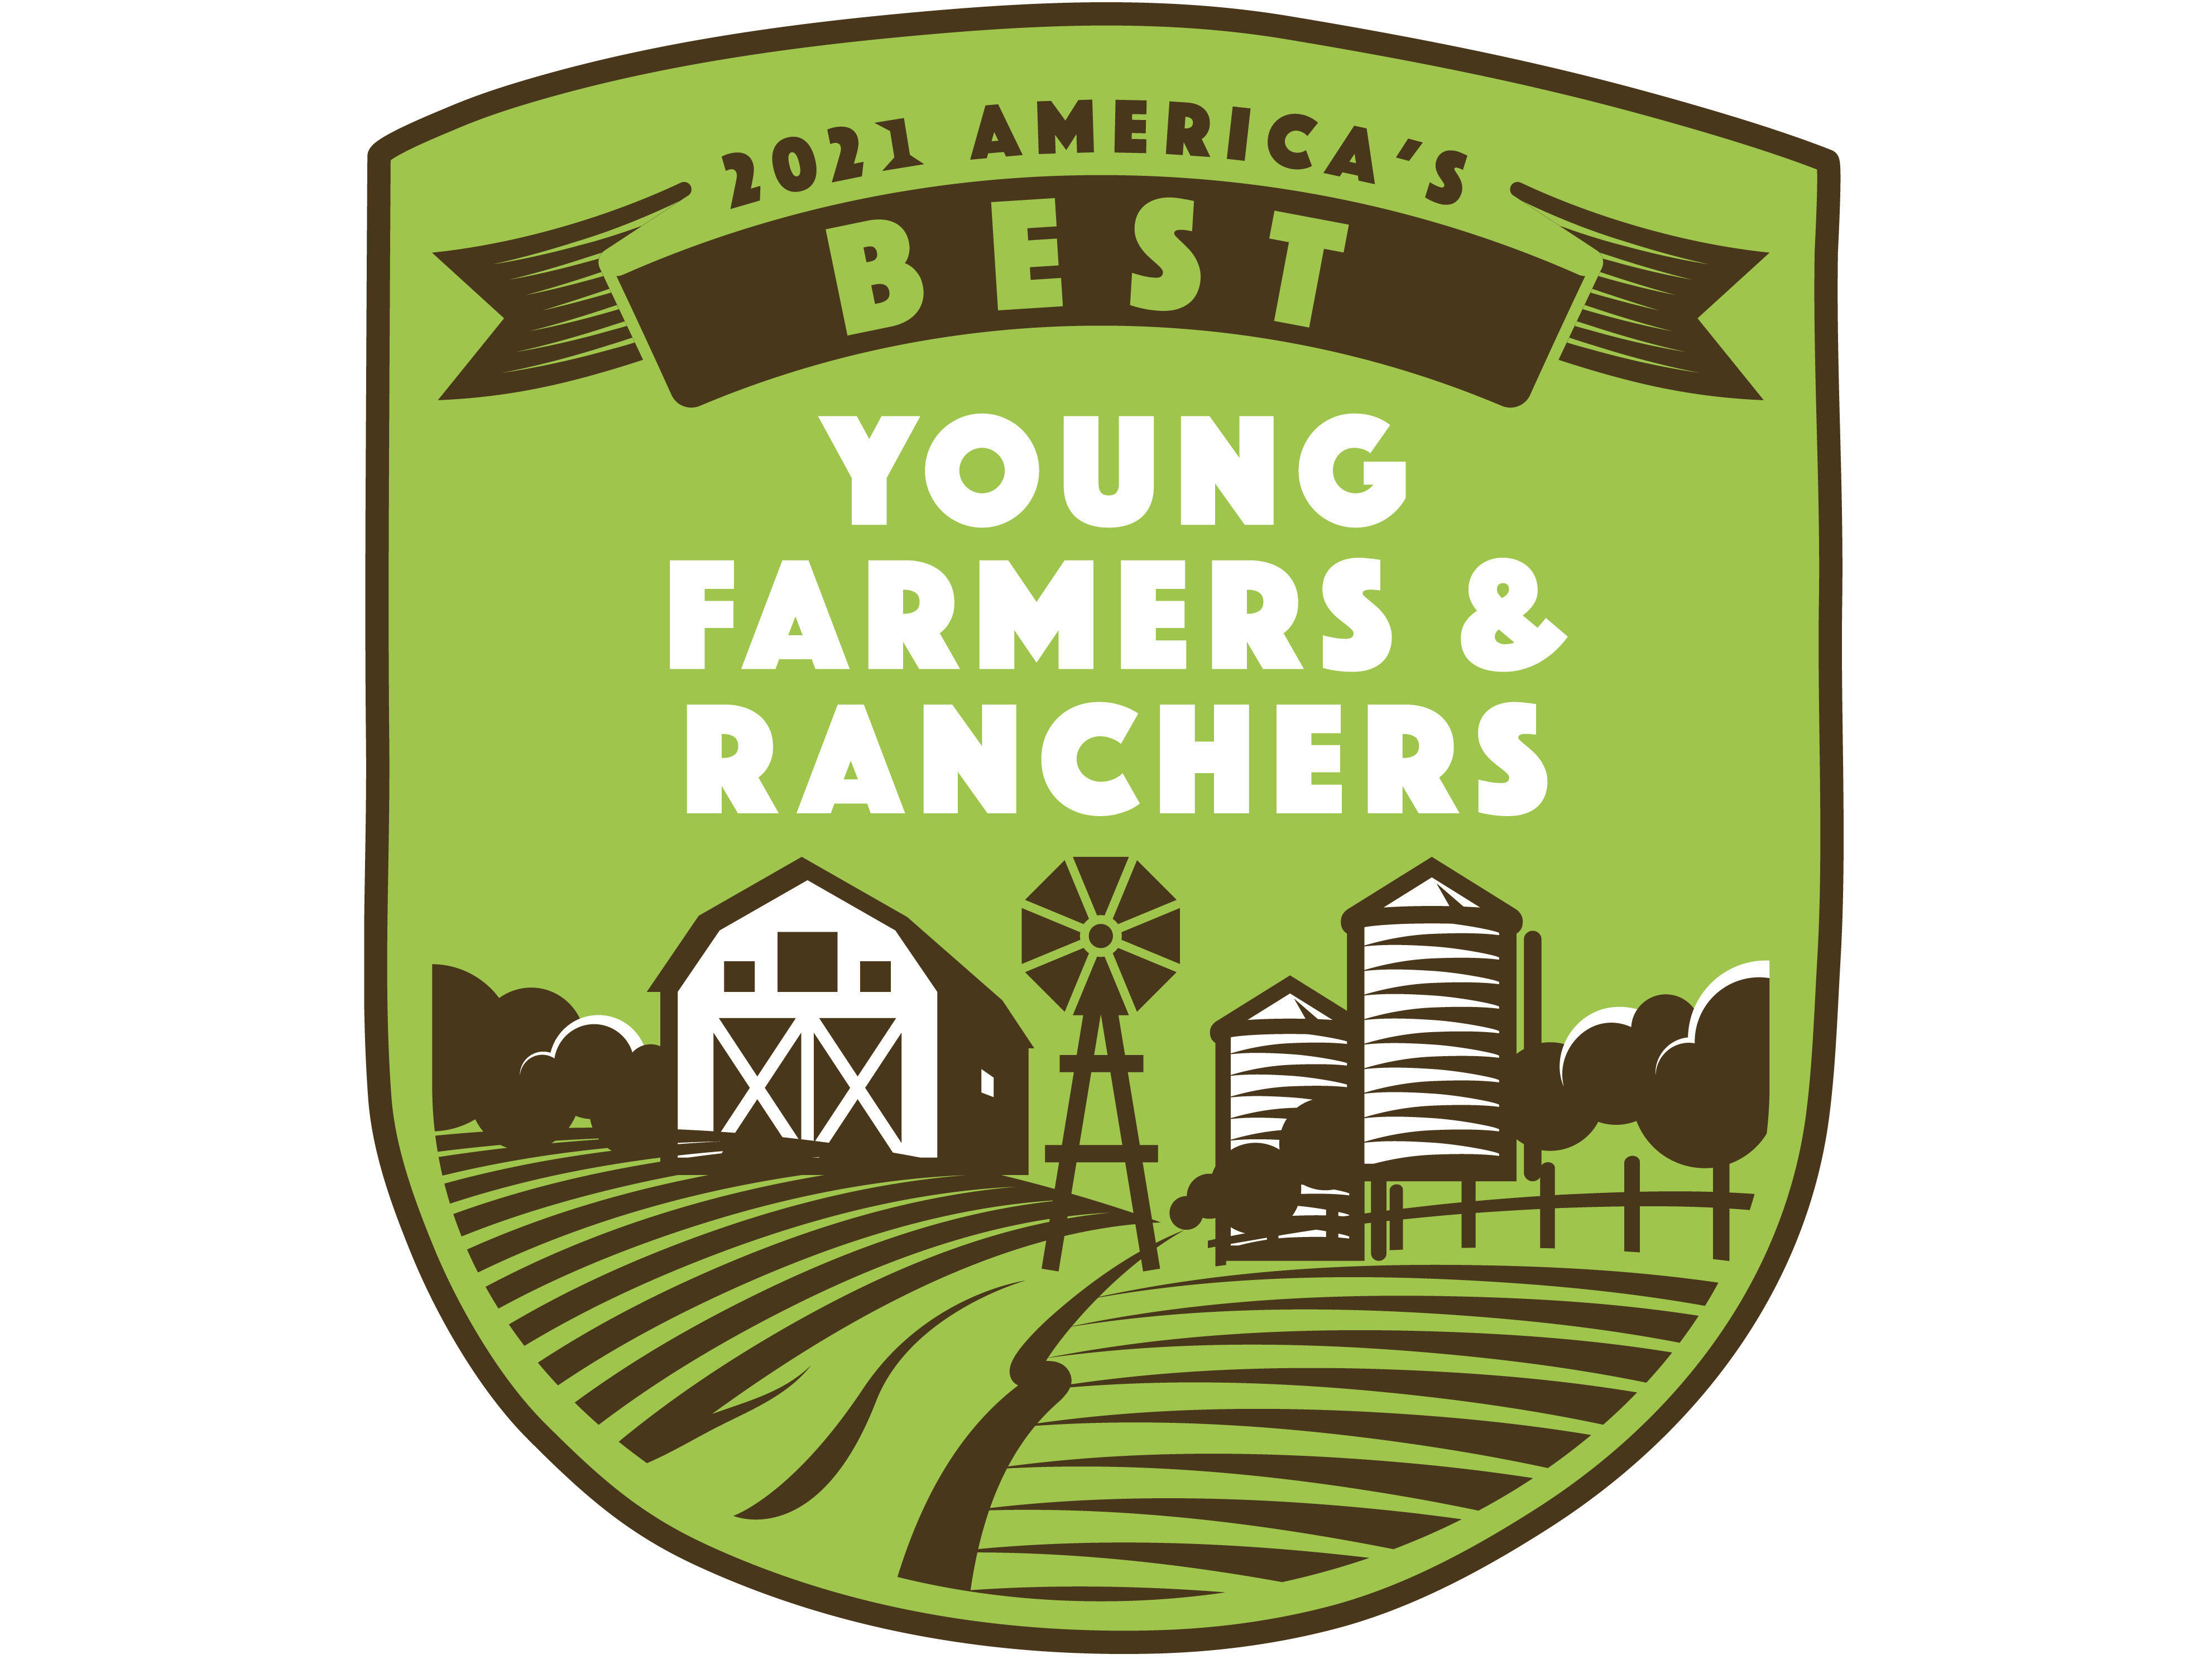 America's Best Young Farmers and Ranchers (Progressive Farmer image by Progressive Farmer)